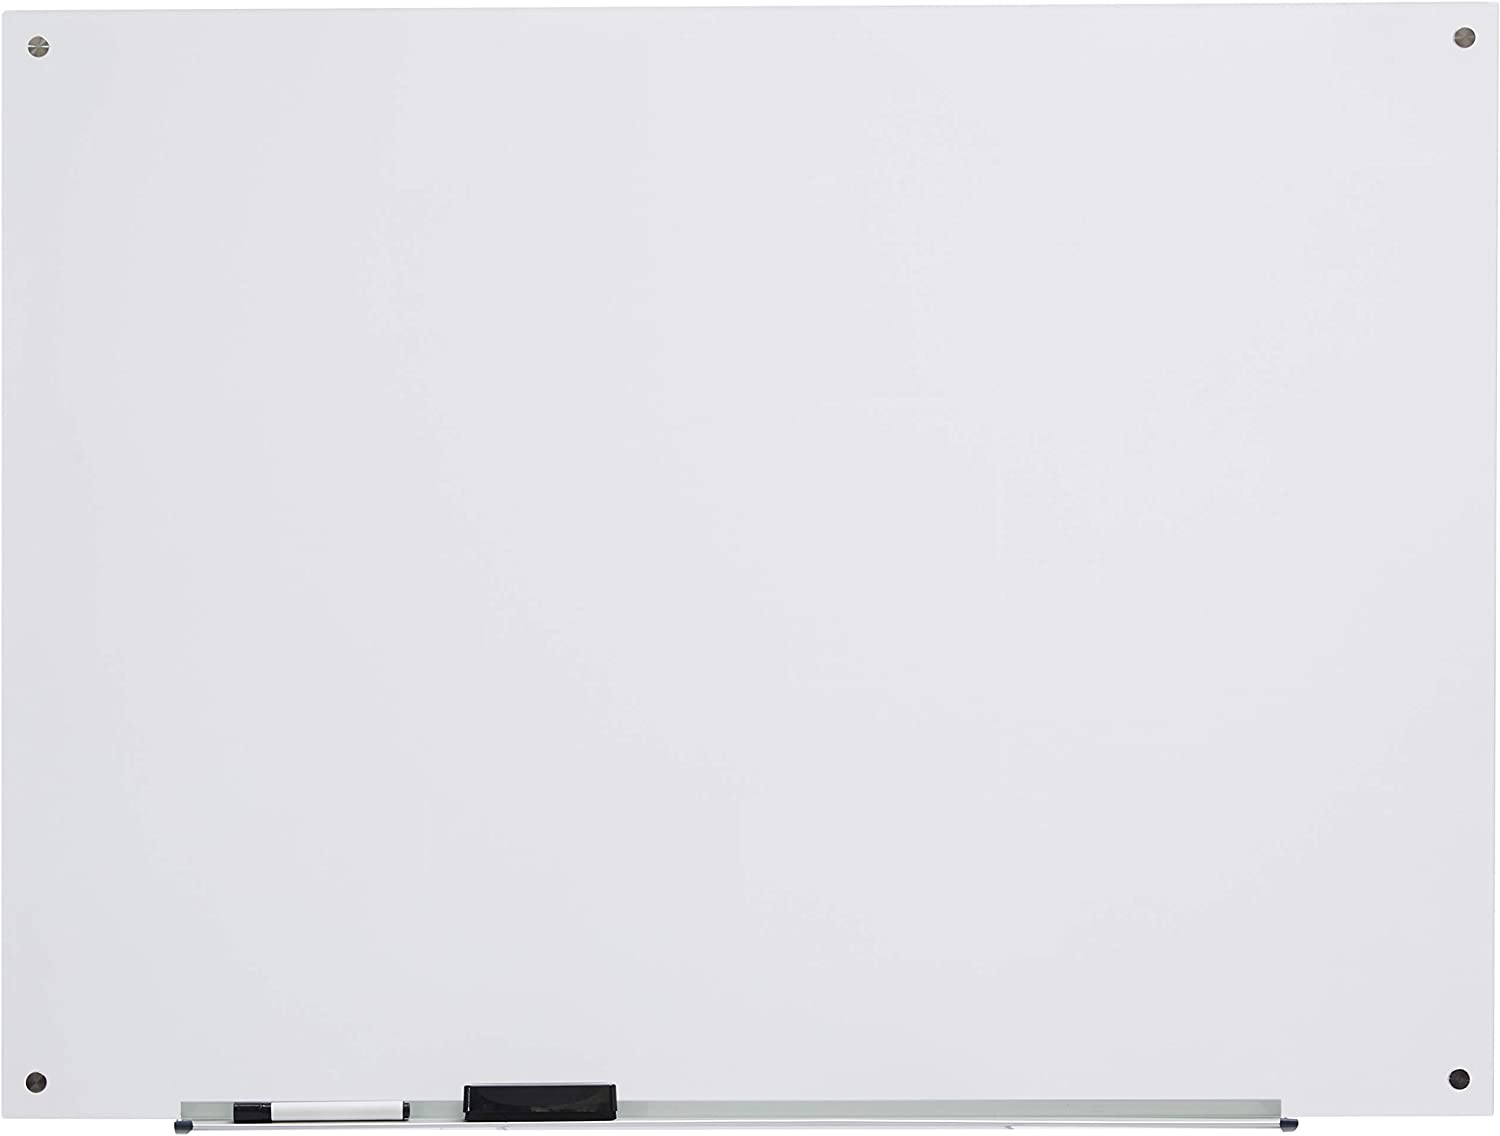 AmazonBasics Glass Dry-Erase Board - Frosted, Non-Magnetic, 4 Feet x 3 Feet